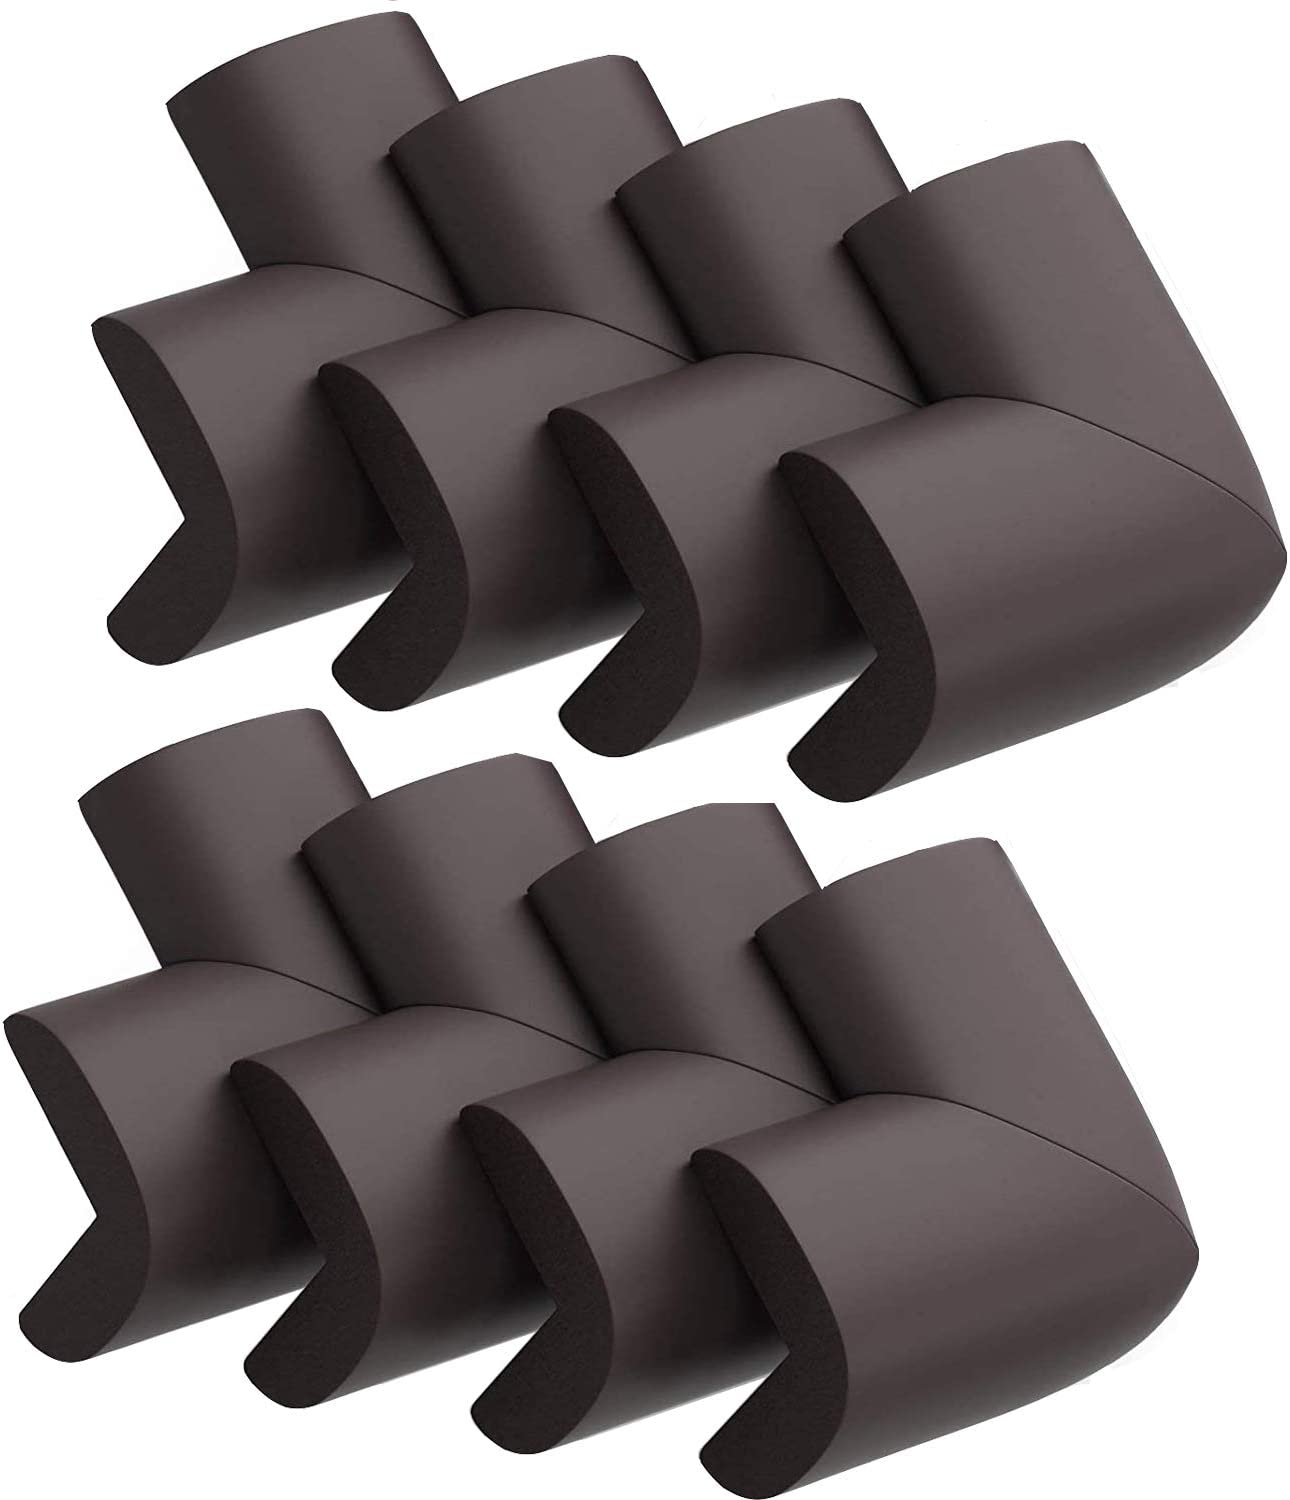 Upgraded Baby Safety Foam Corner Protectors, Childproof Tables and Furniture Sharp Corner Guards, Edge Guard Cushion, 8 Pack, (Brown)